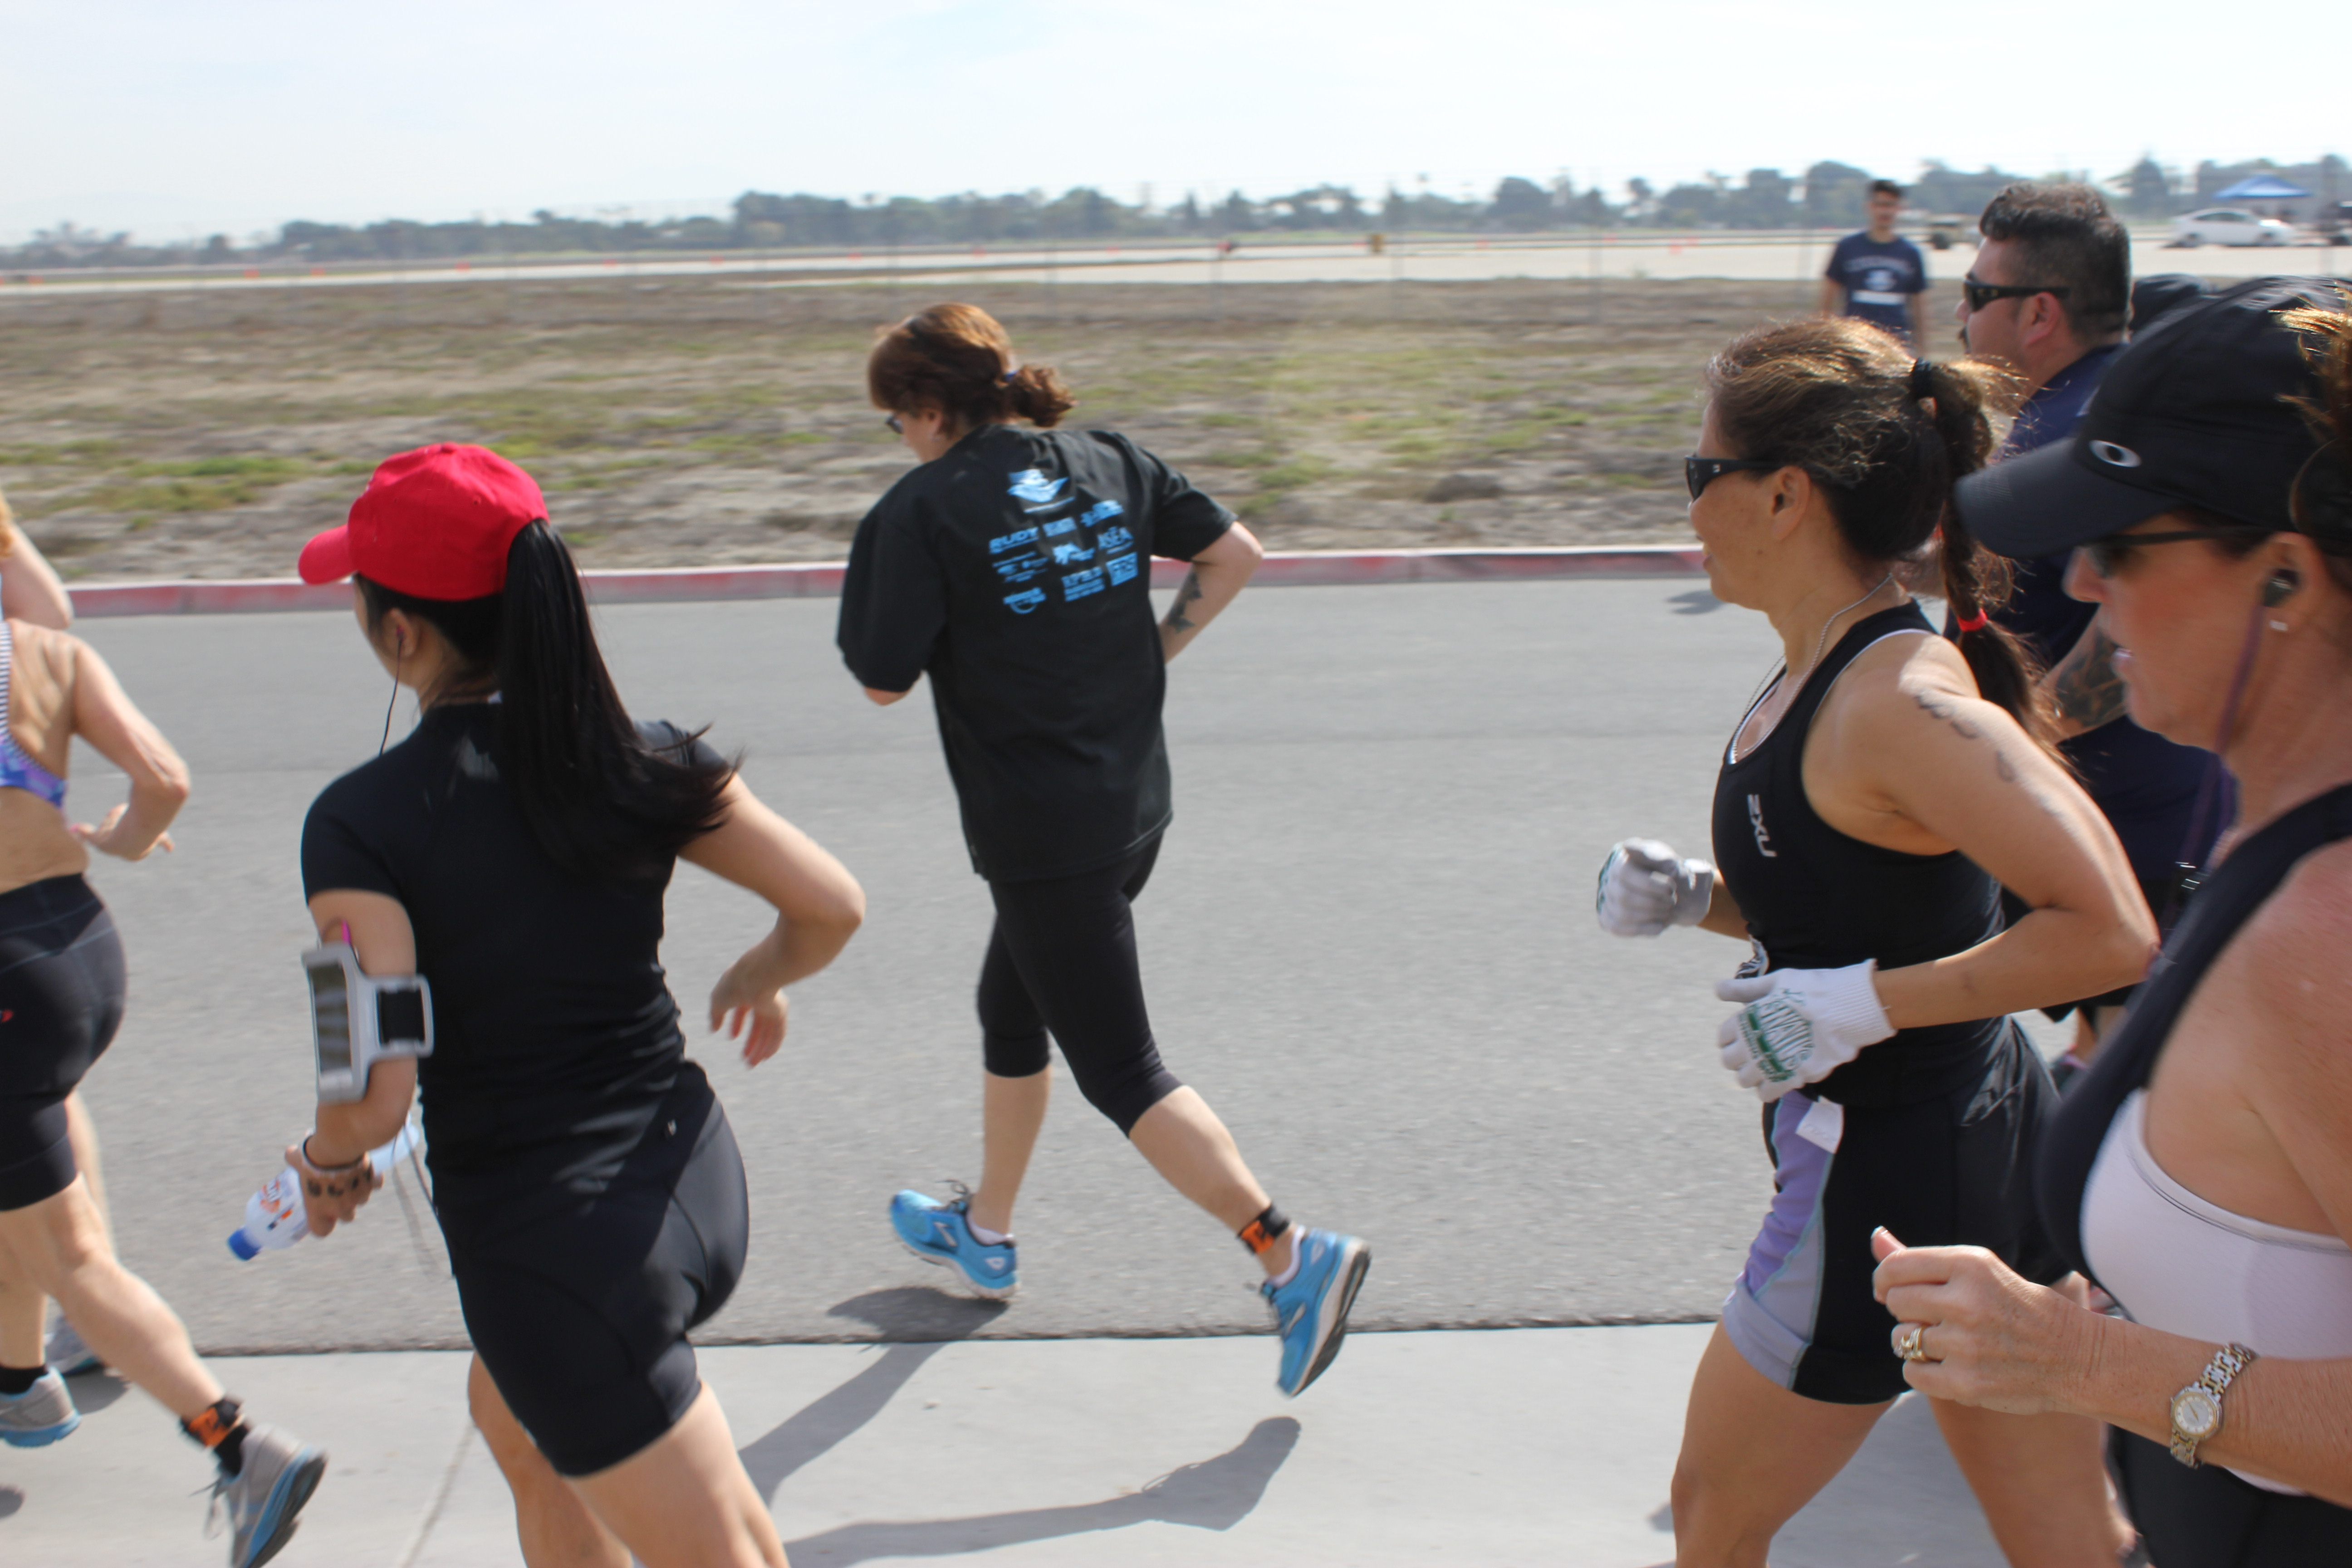 Cathy running (with white gloves)